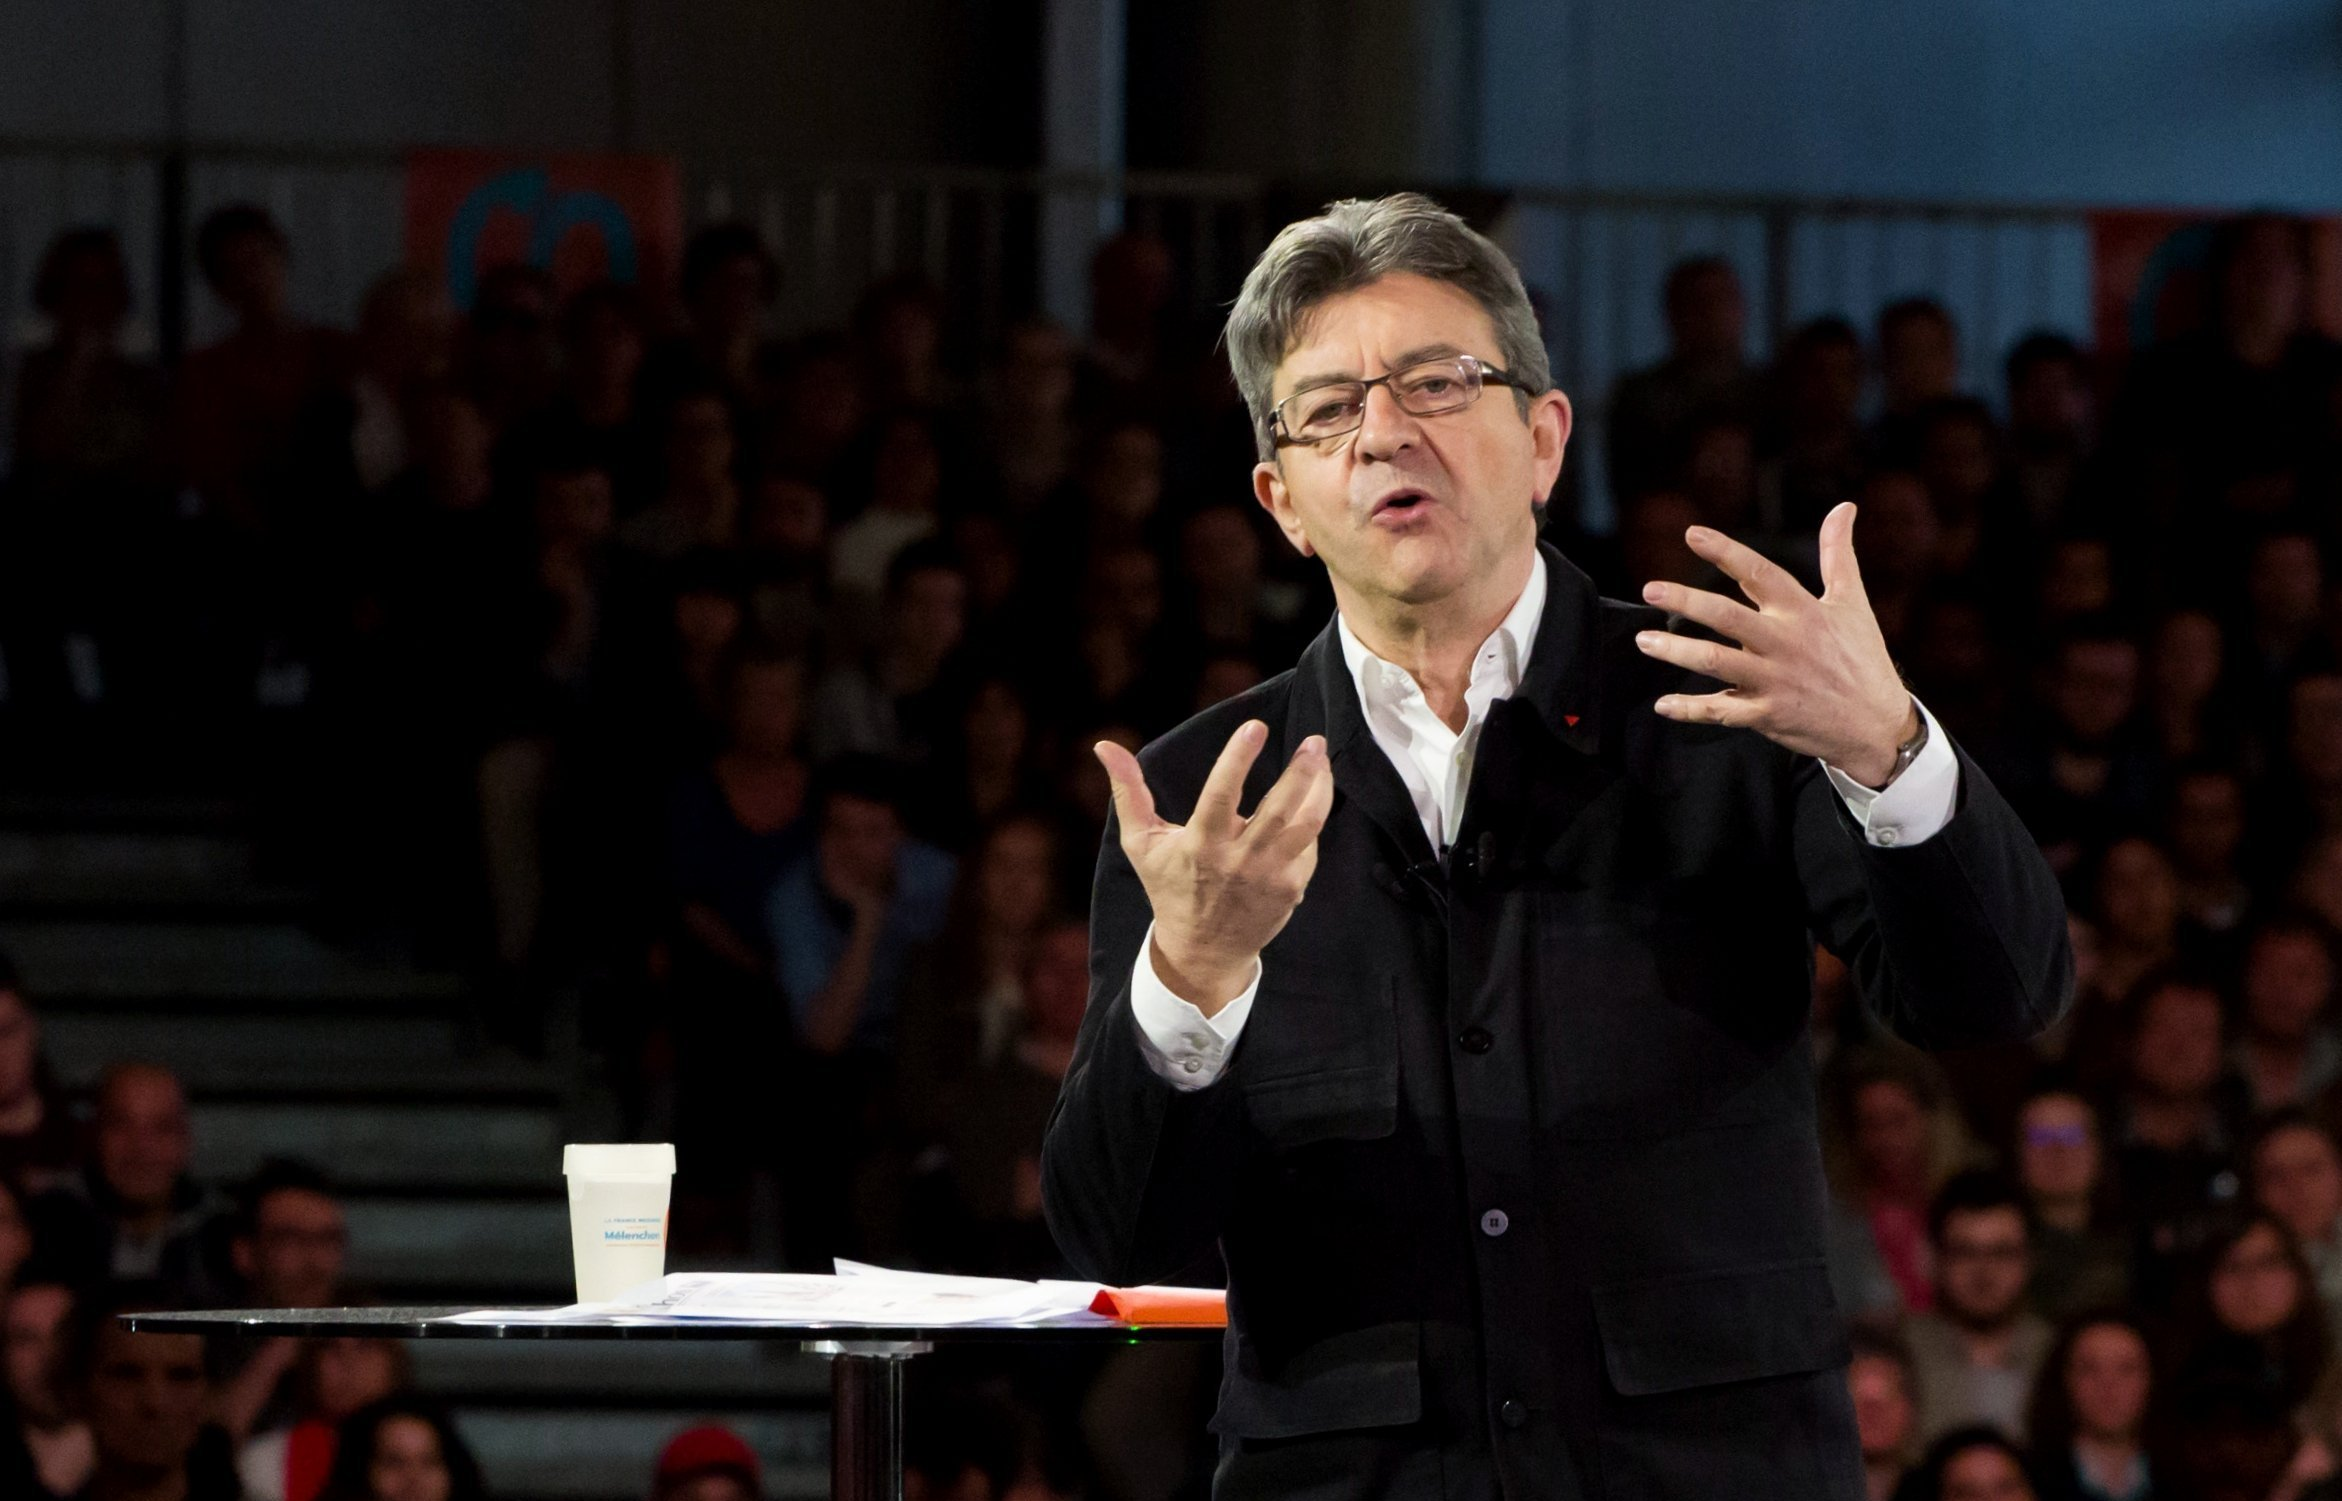 Jean-Luc Melenchon during a rally in Lille, France during last year's presidential election.